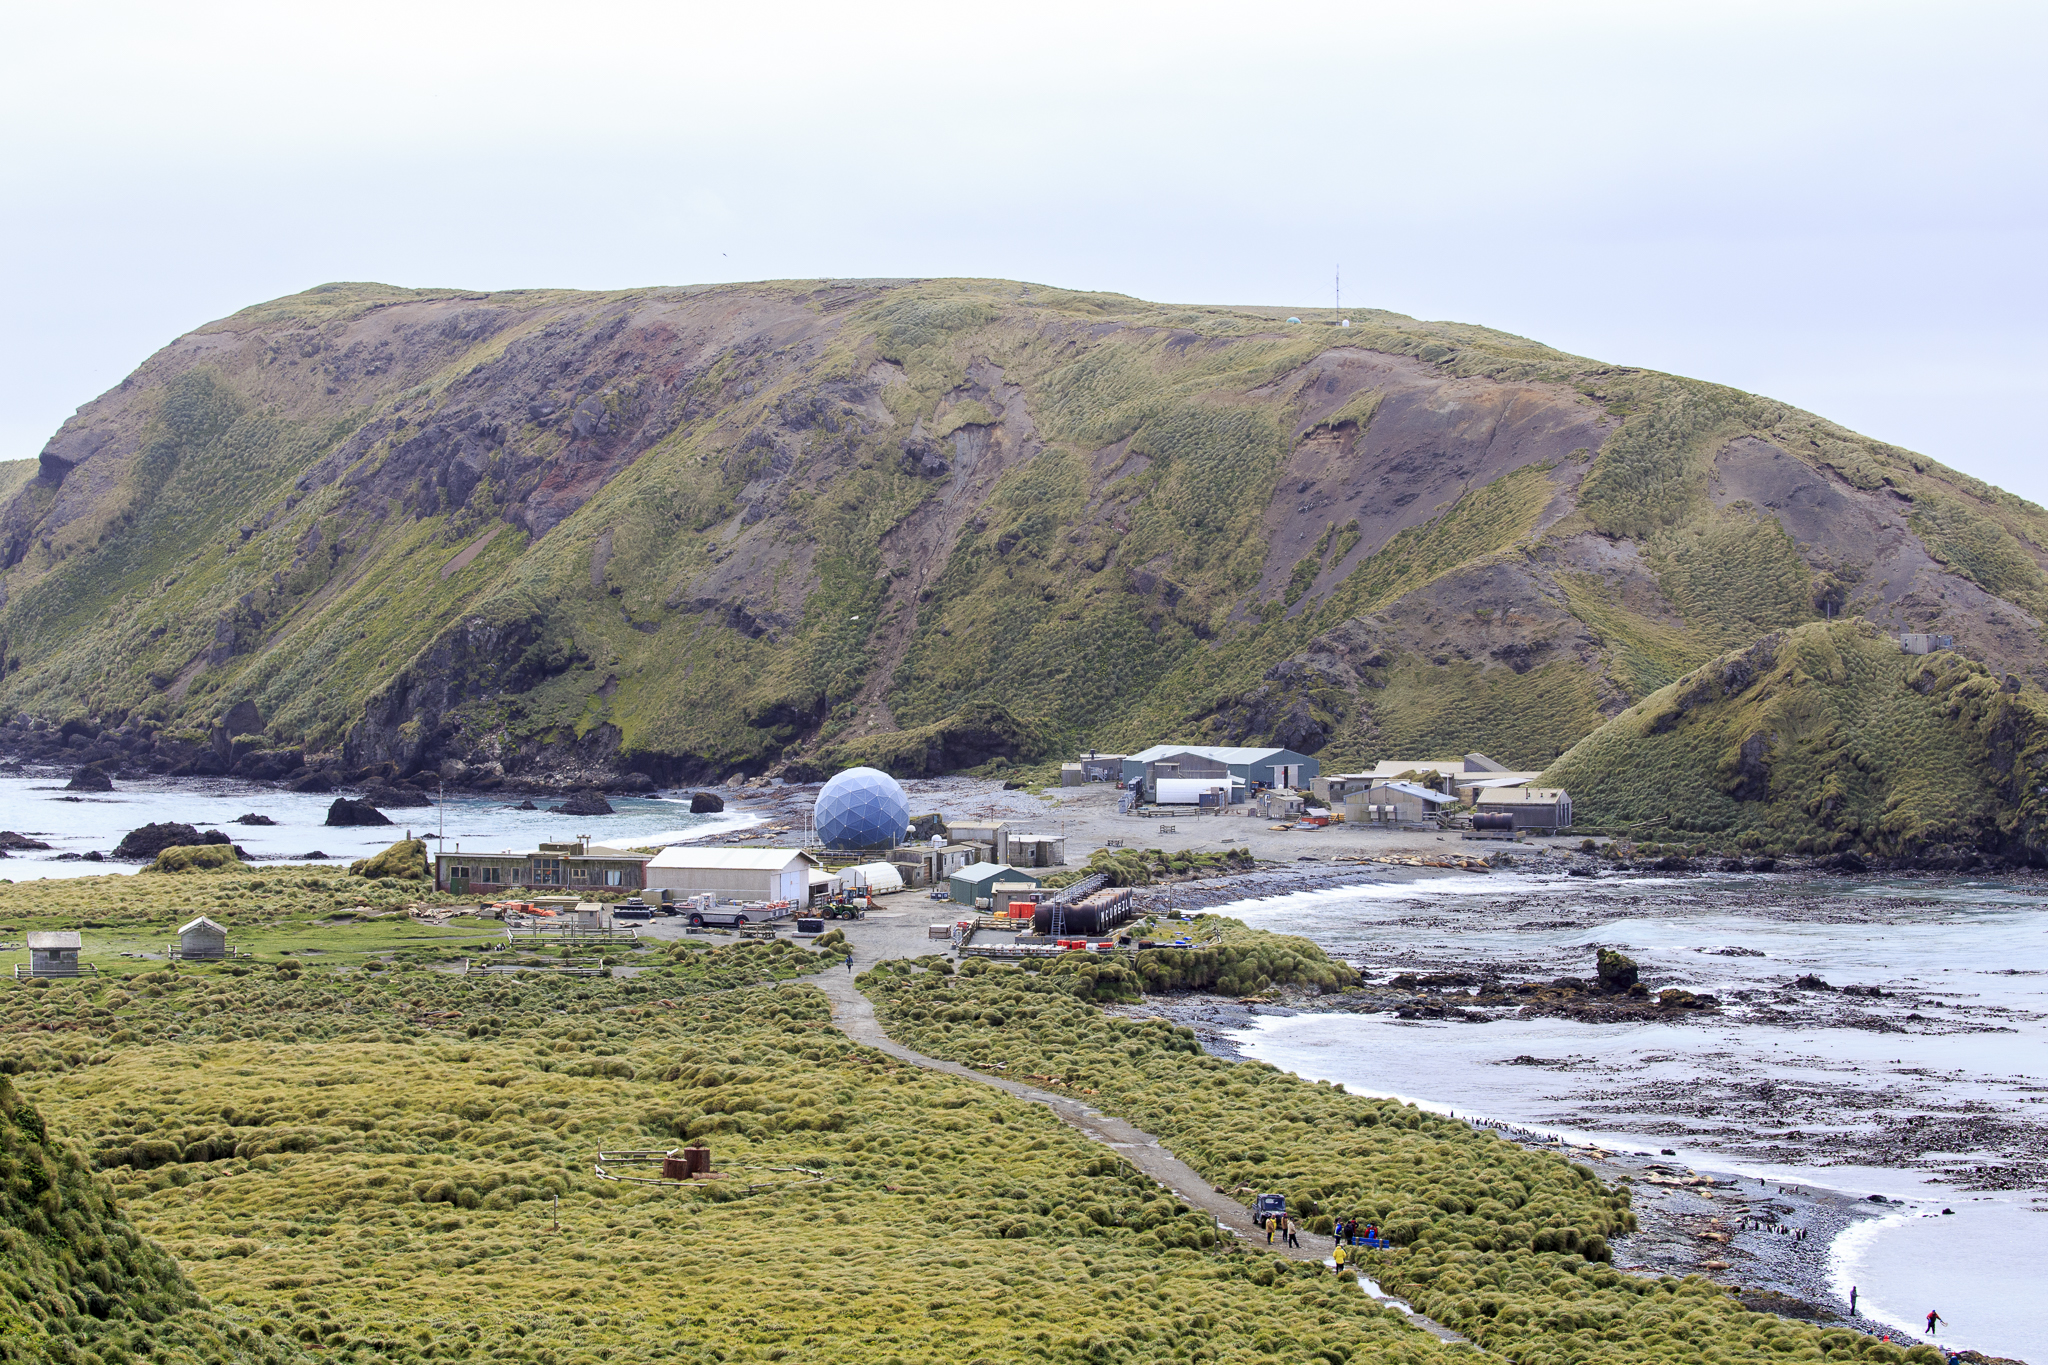 Australian Antarctic Division base- Macquarie Island